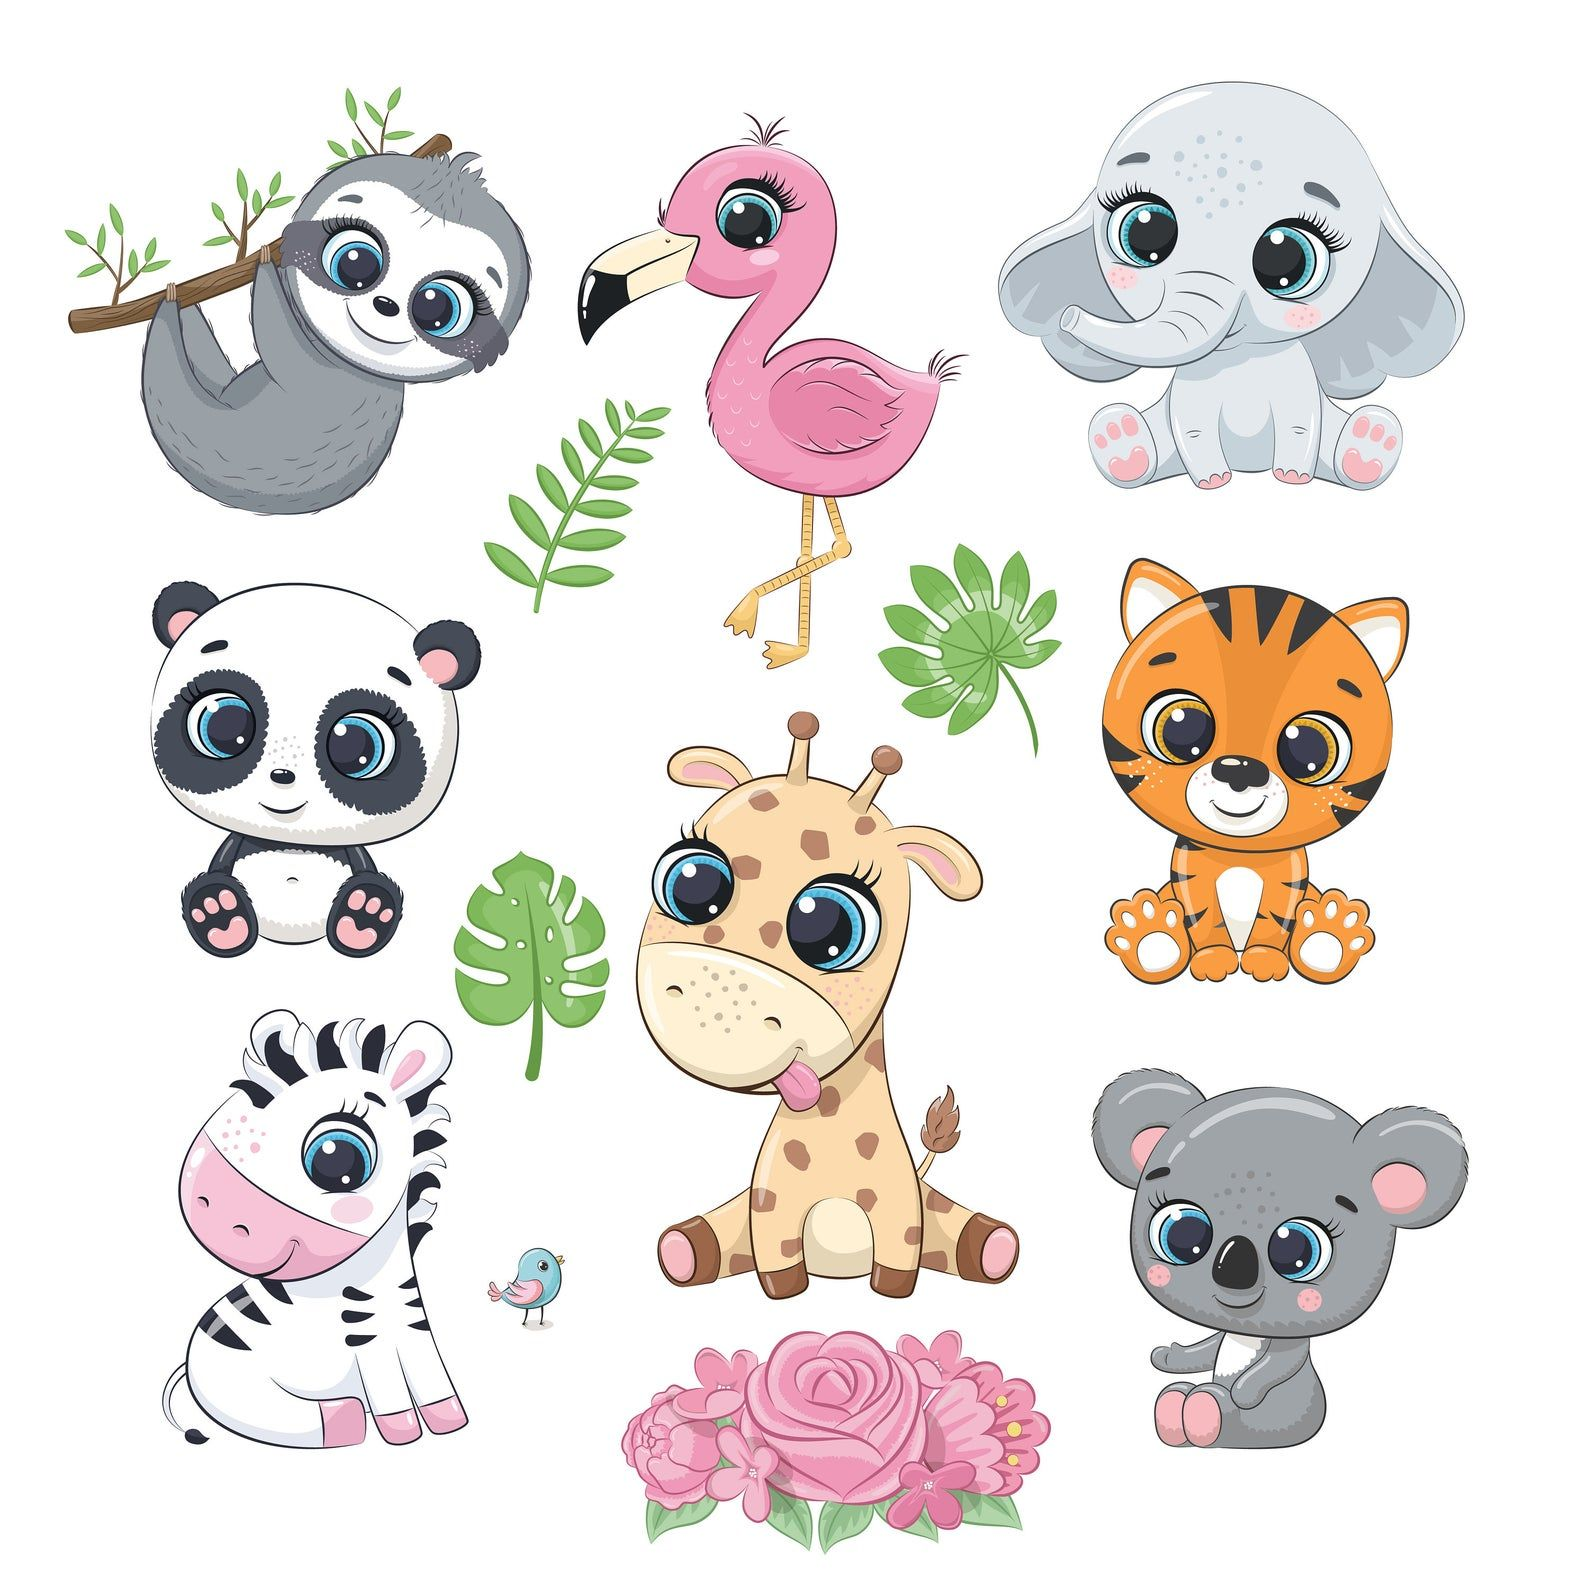 Cute Zoo Animals Clipart Png Eps Australian Animals Clipart Jungle Baby Shower Tropical Flamingo Clipart Elephant Animal Clipart Baby Animal Drawings Zoo Animals